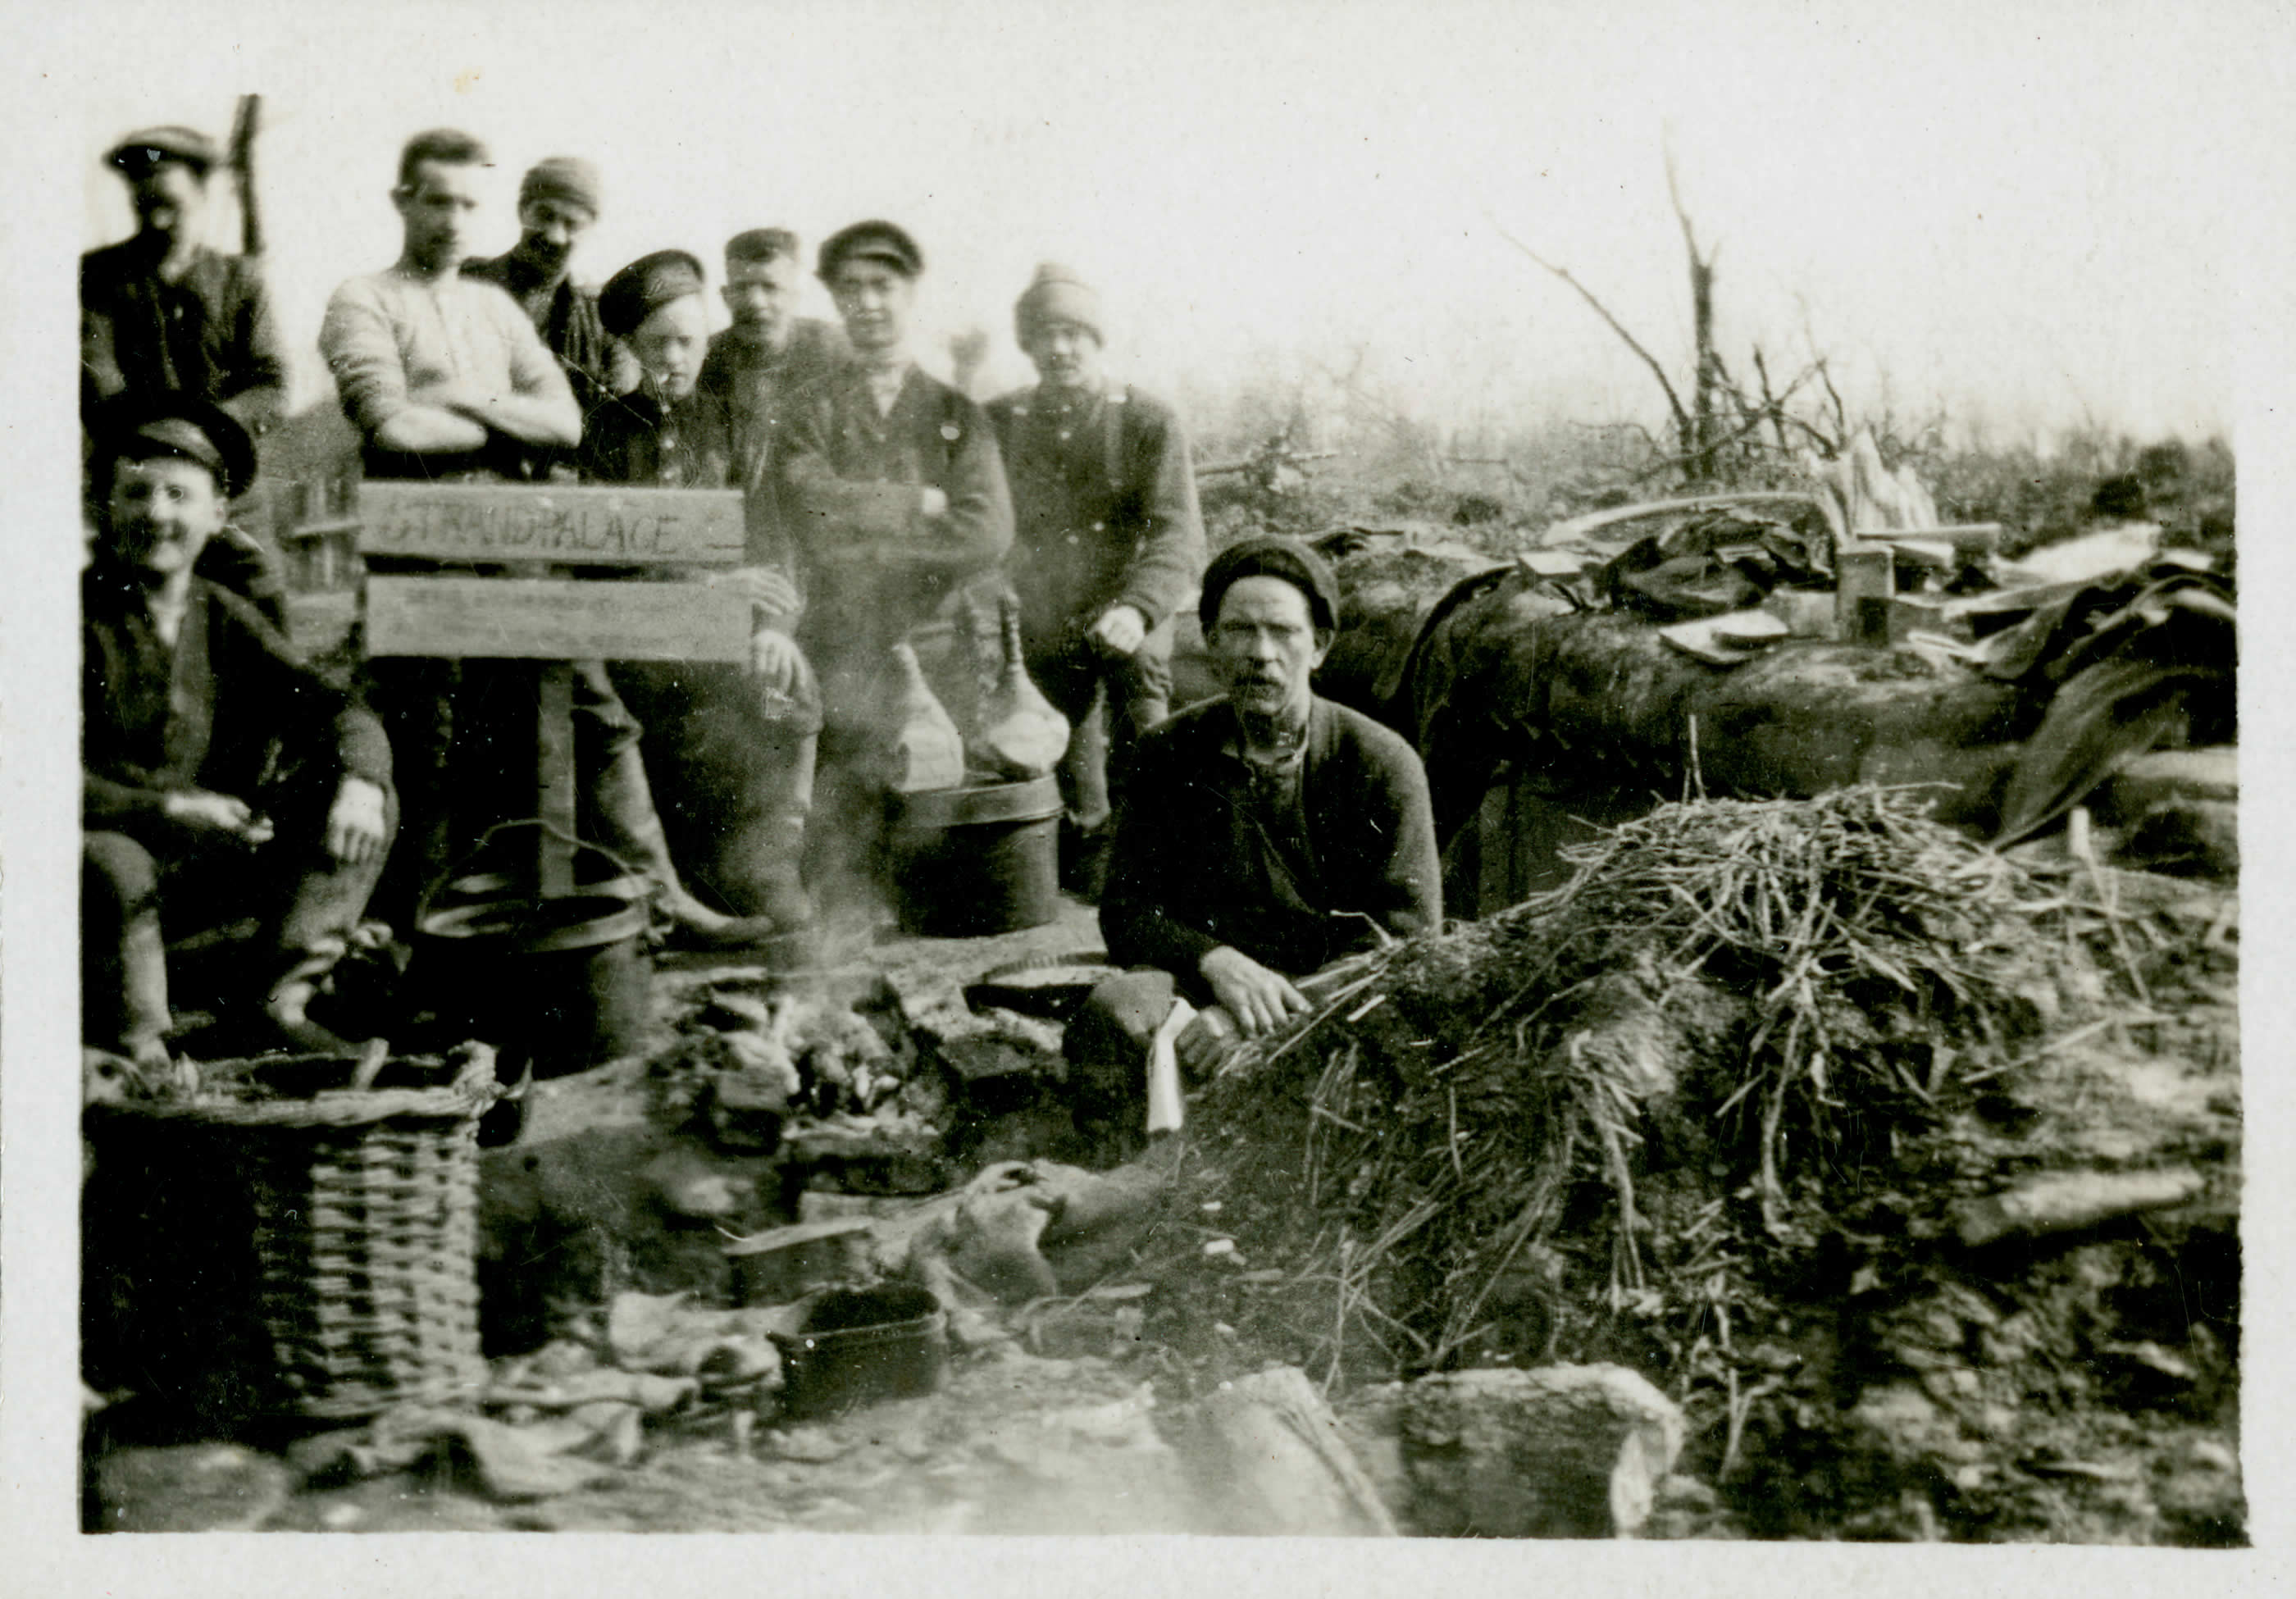 Canadian soldiers in the trenches